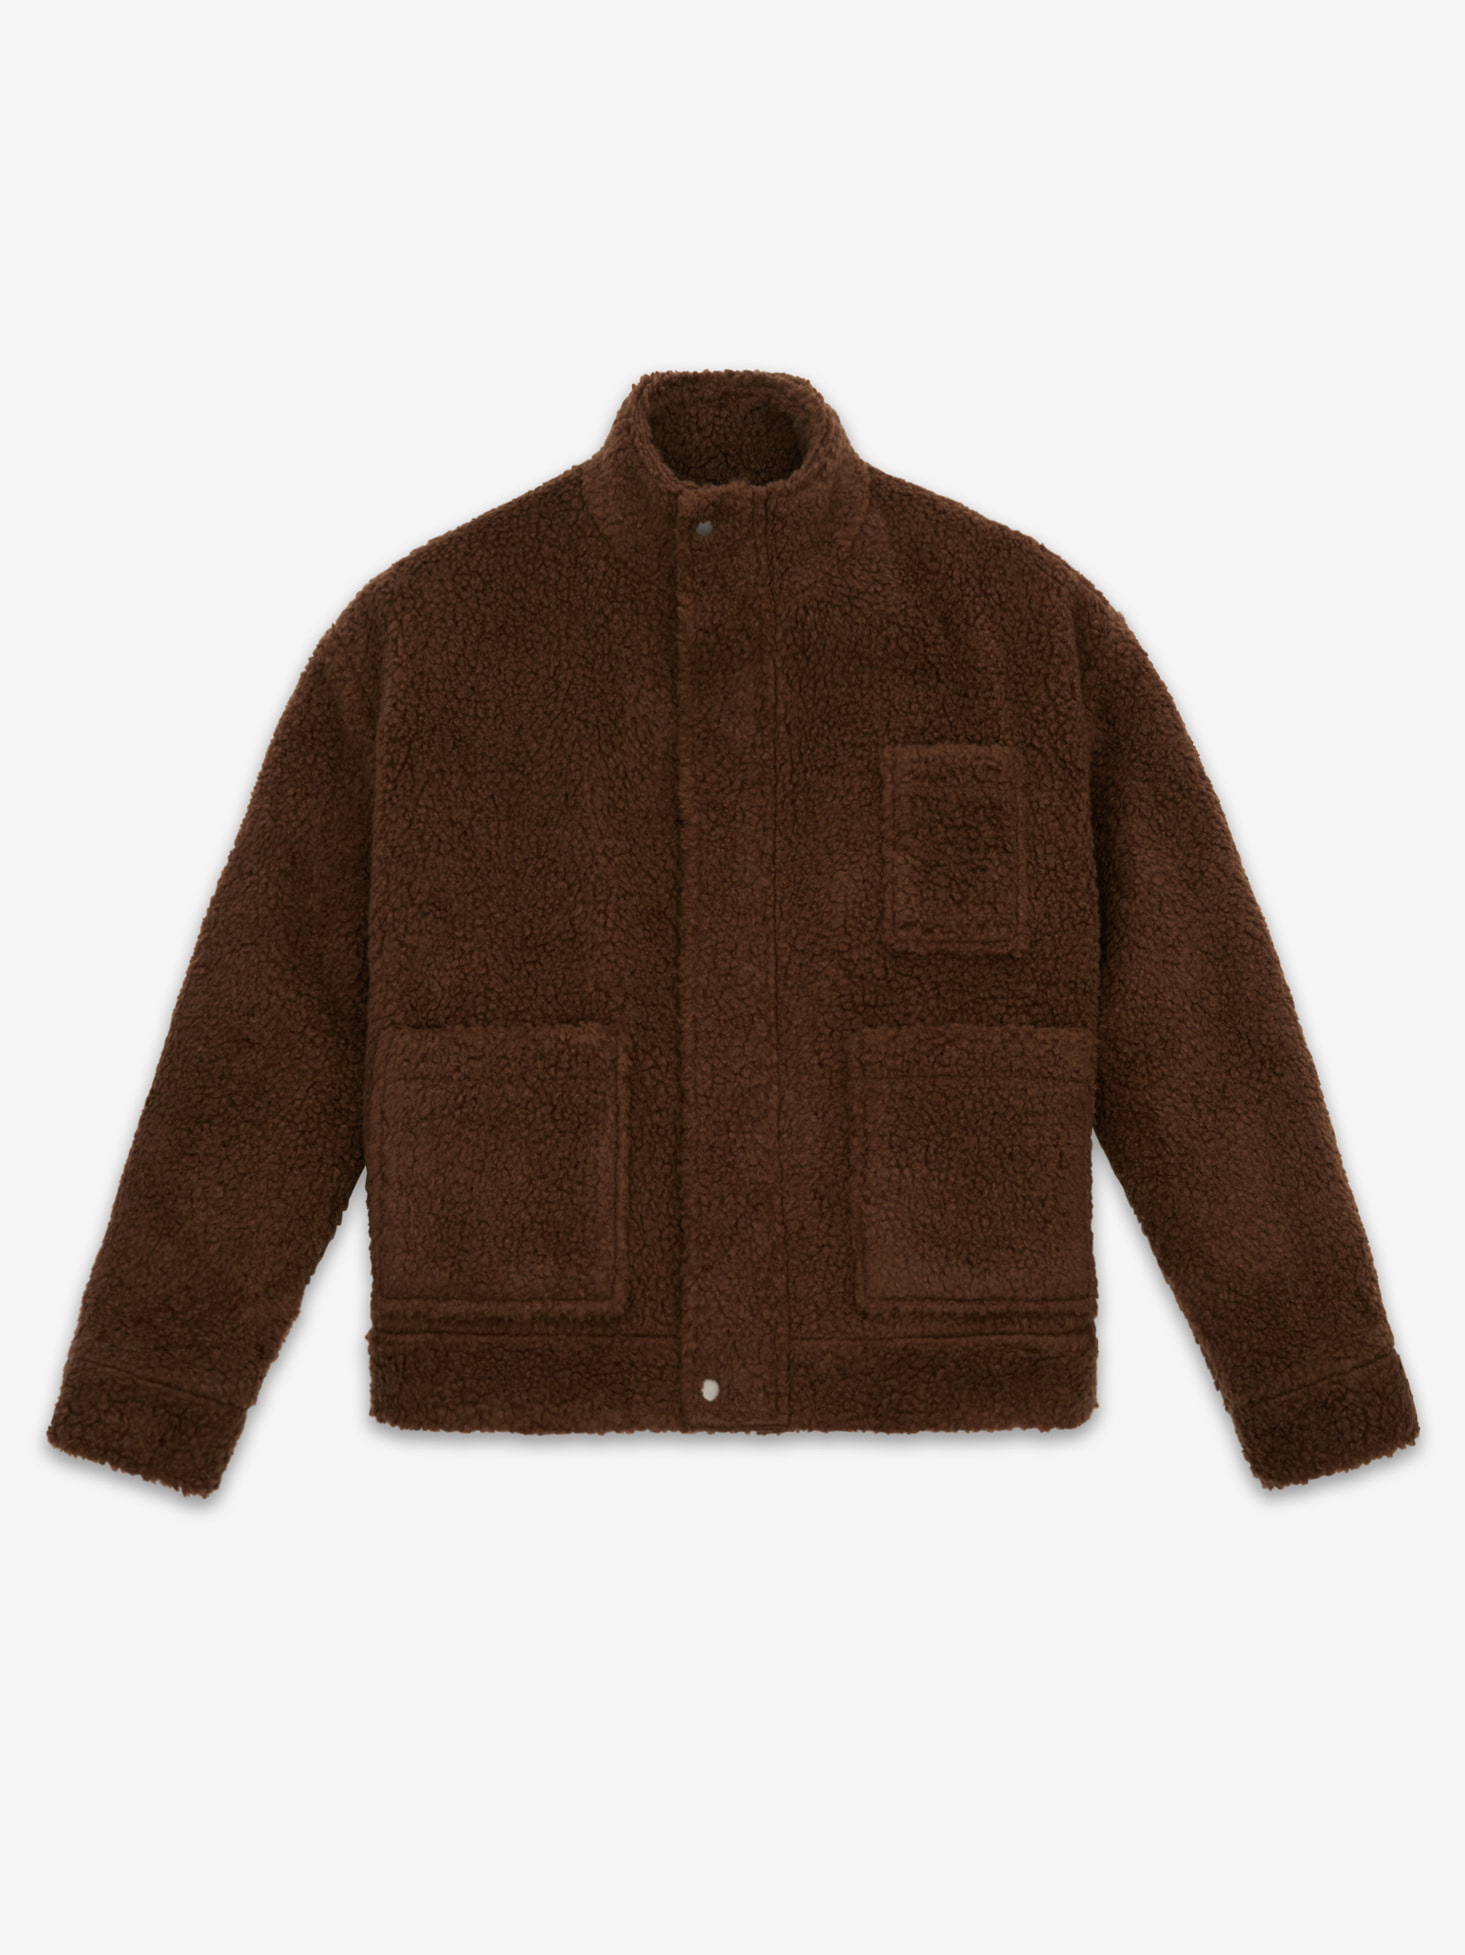 LAMBS WOOL MOBILE JACKET(BROWN)